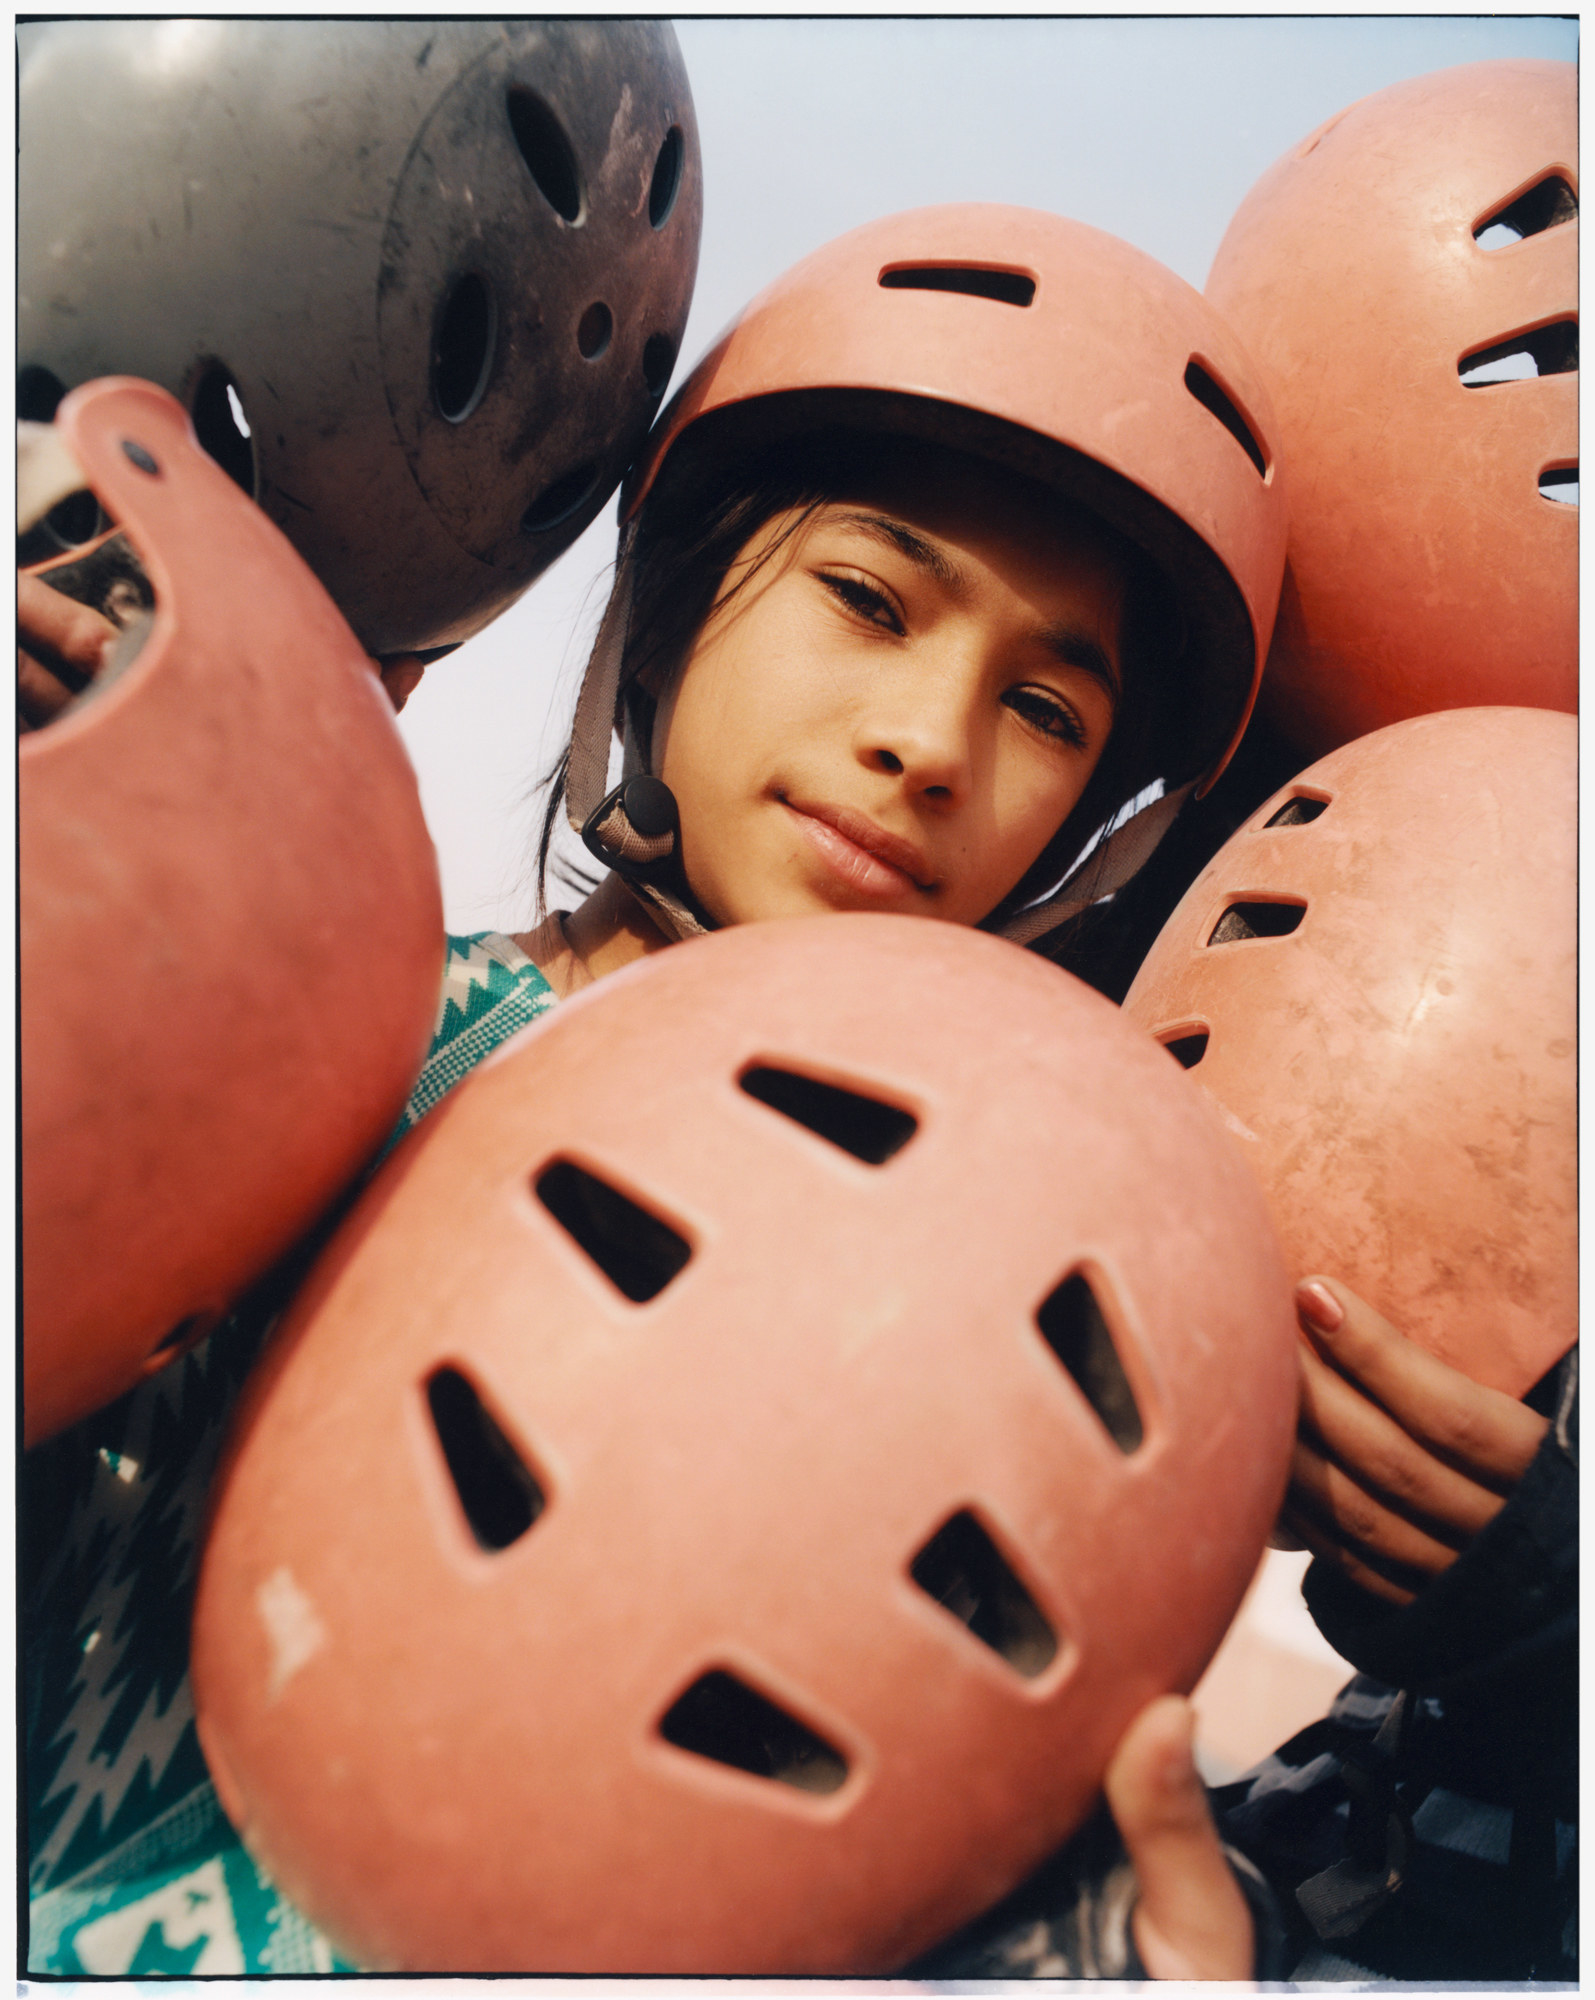 A young girl in a skate helmet surrounded by other helmets